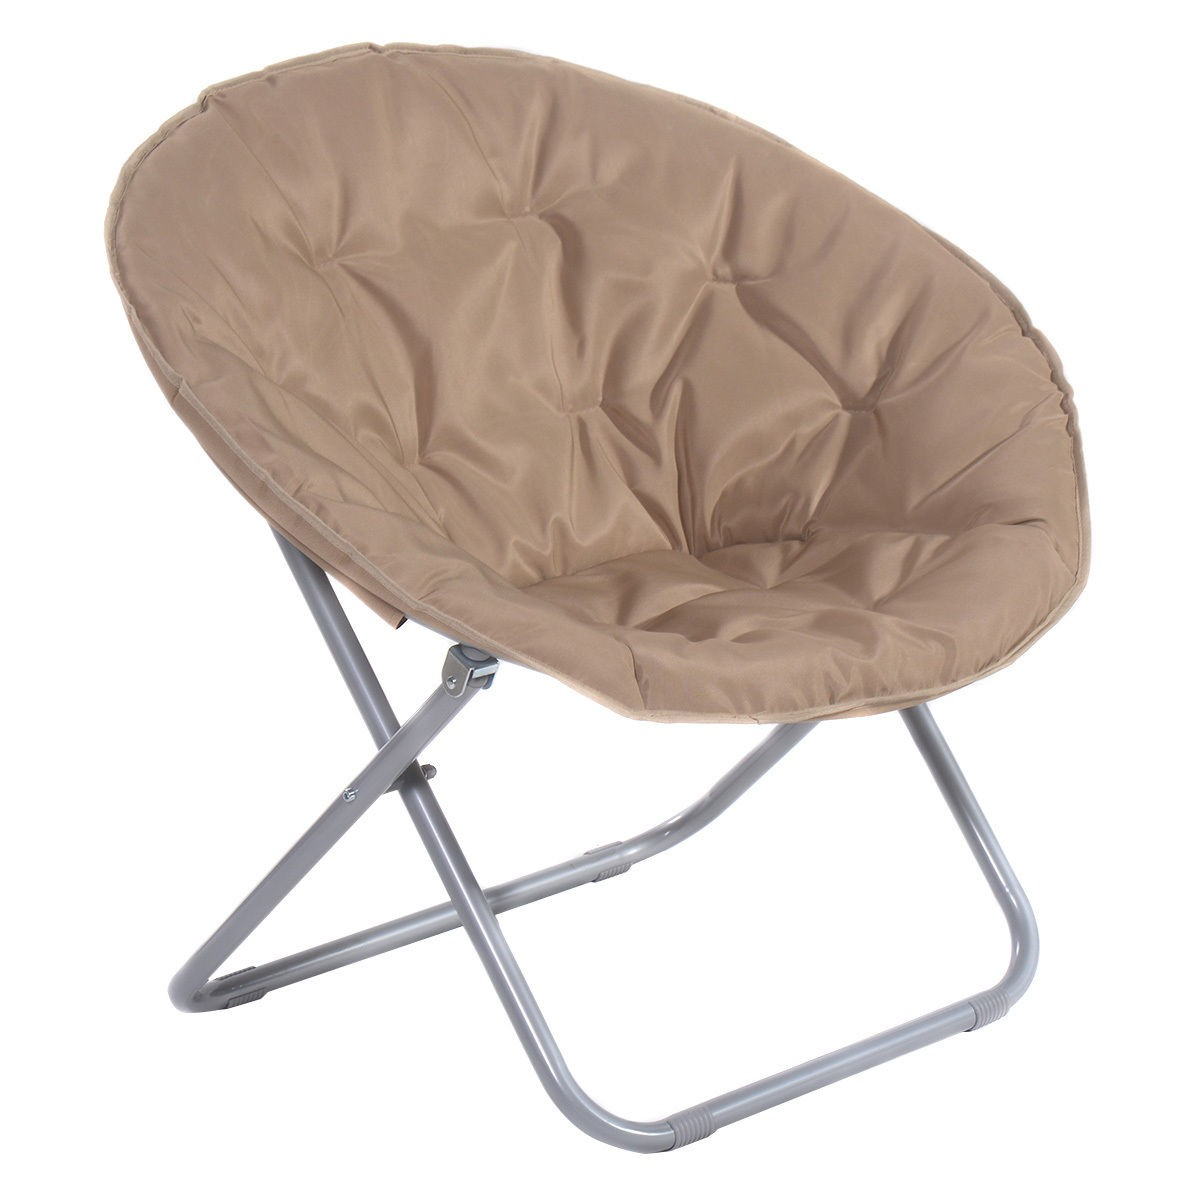 Large Folding Saucer Moon Chair Den Tv Living Room Round